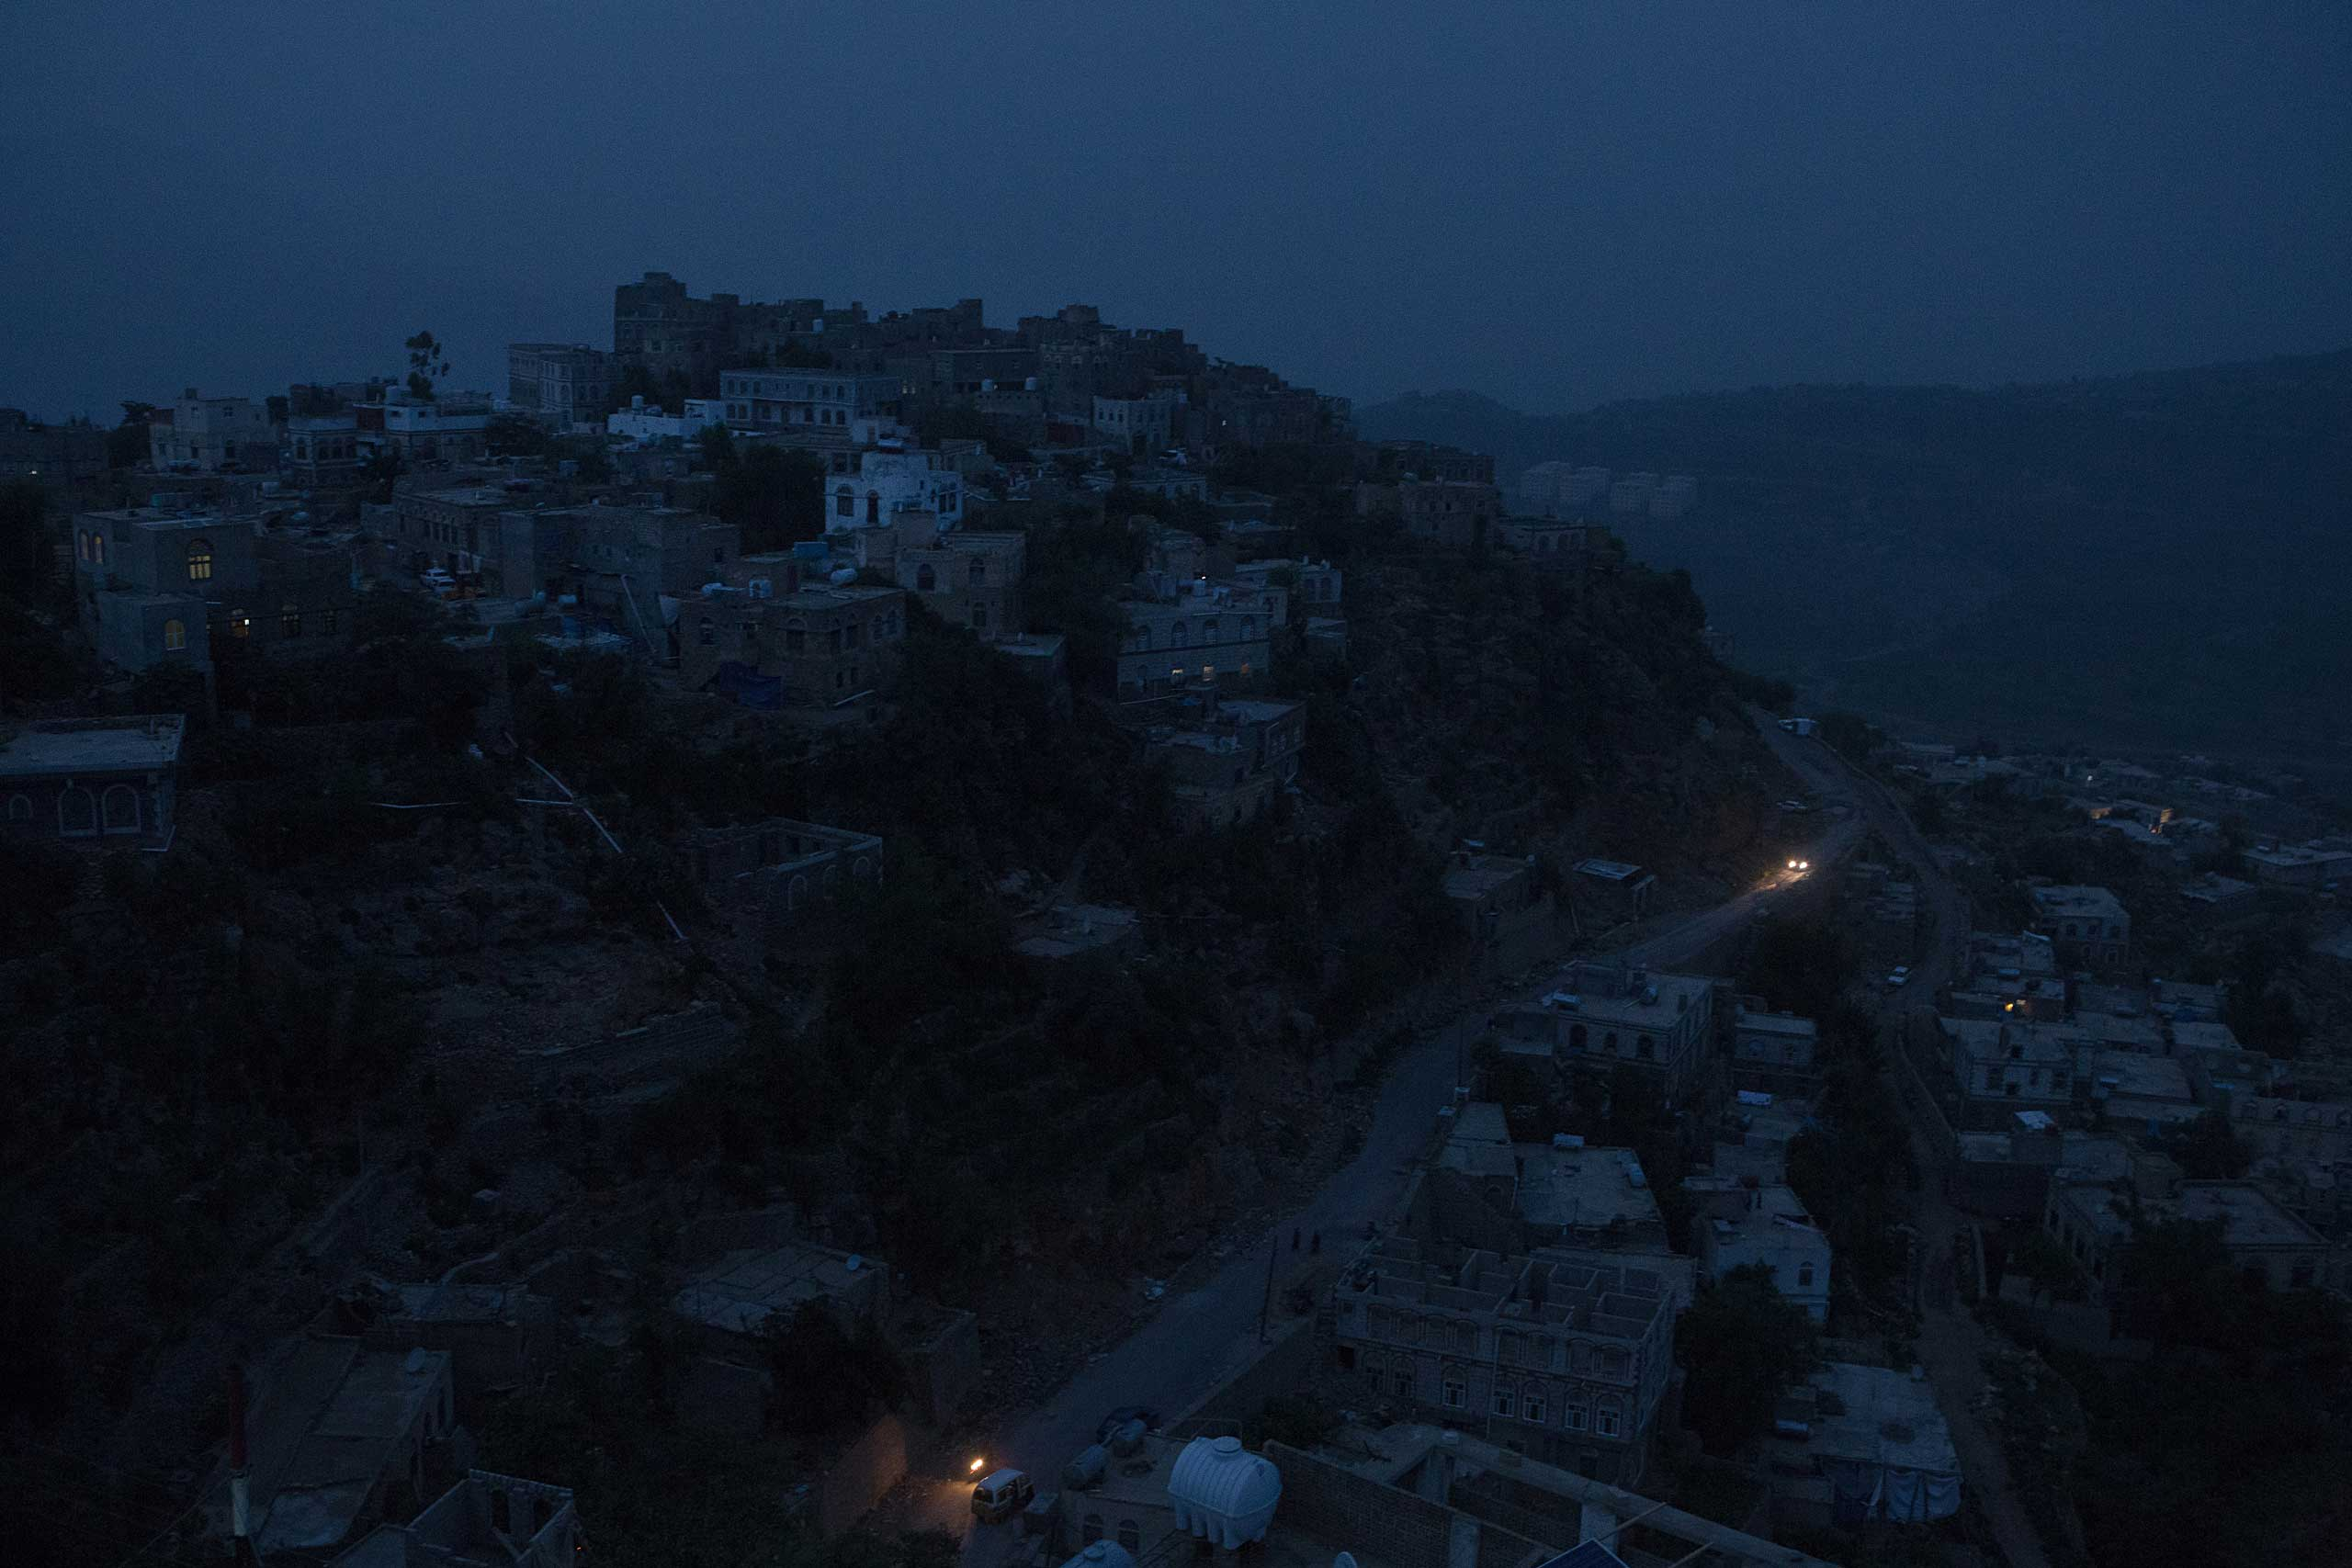 The evening view of the city of Hajjah in the northern provinces of Yemen, where residents live without power, Aug. 19, 2015.